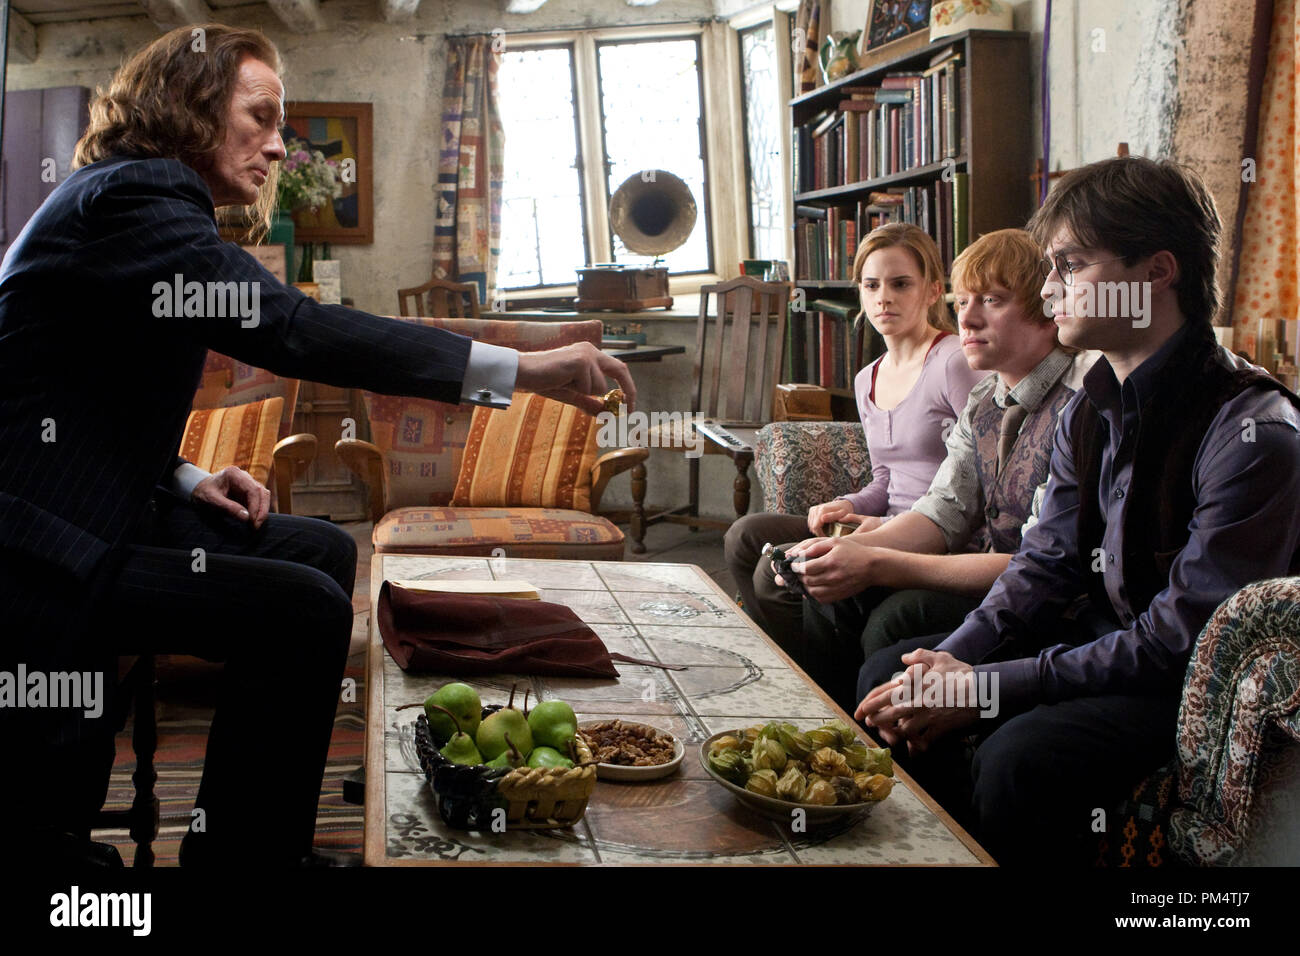 (L-r) Bill Nighy as Rufus Scrimgeour, EMMA WATSON as Hermione Granger, RUPERT GRINT as Ron Weasley and DANIEL RADCLIFFE as Harry Potter in Warner Bros. PicturesÕ fantasy adventure ÒHARRY POTTER AND THE DEATHLY HALLOWS Ð PART 1,Ó a Warner Bros. Pictures release.    Photo by Jaap Buitendijk - Stock Image